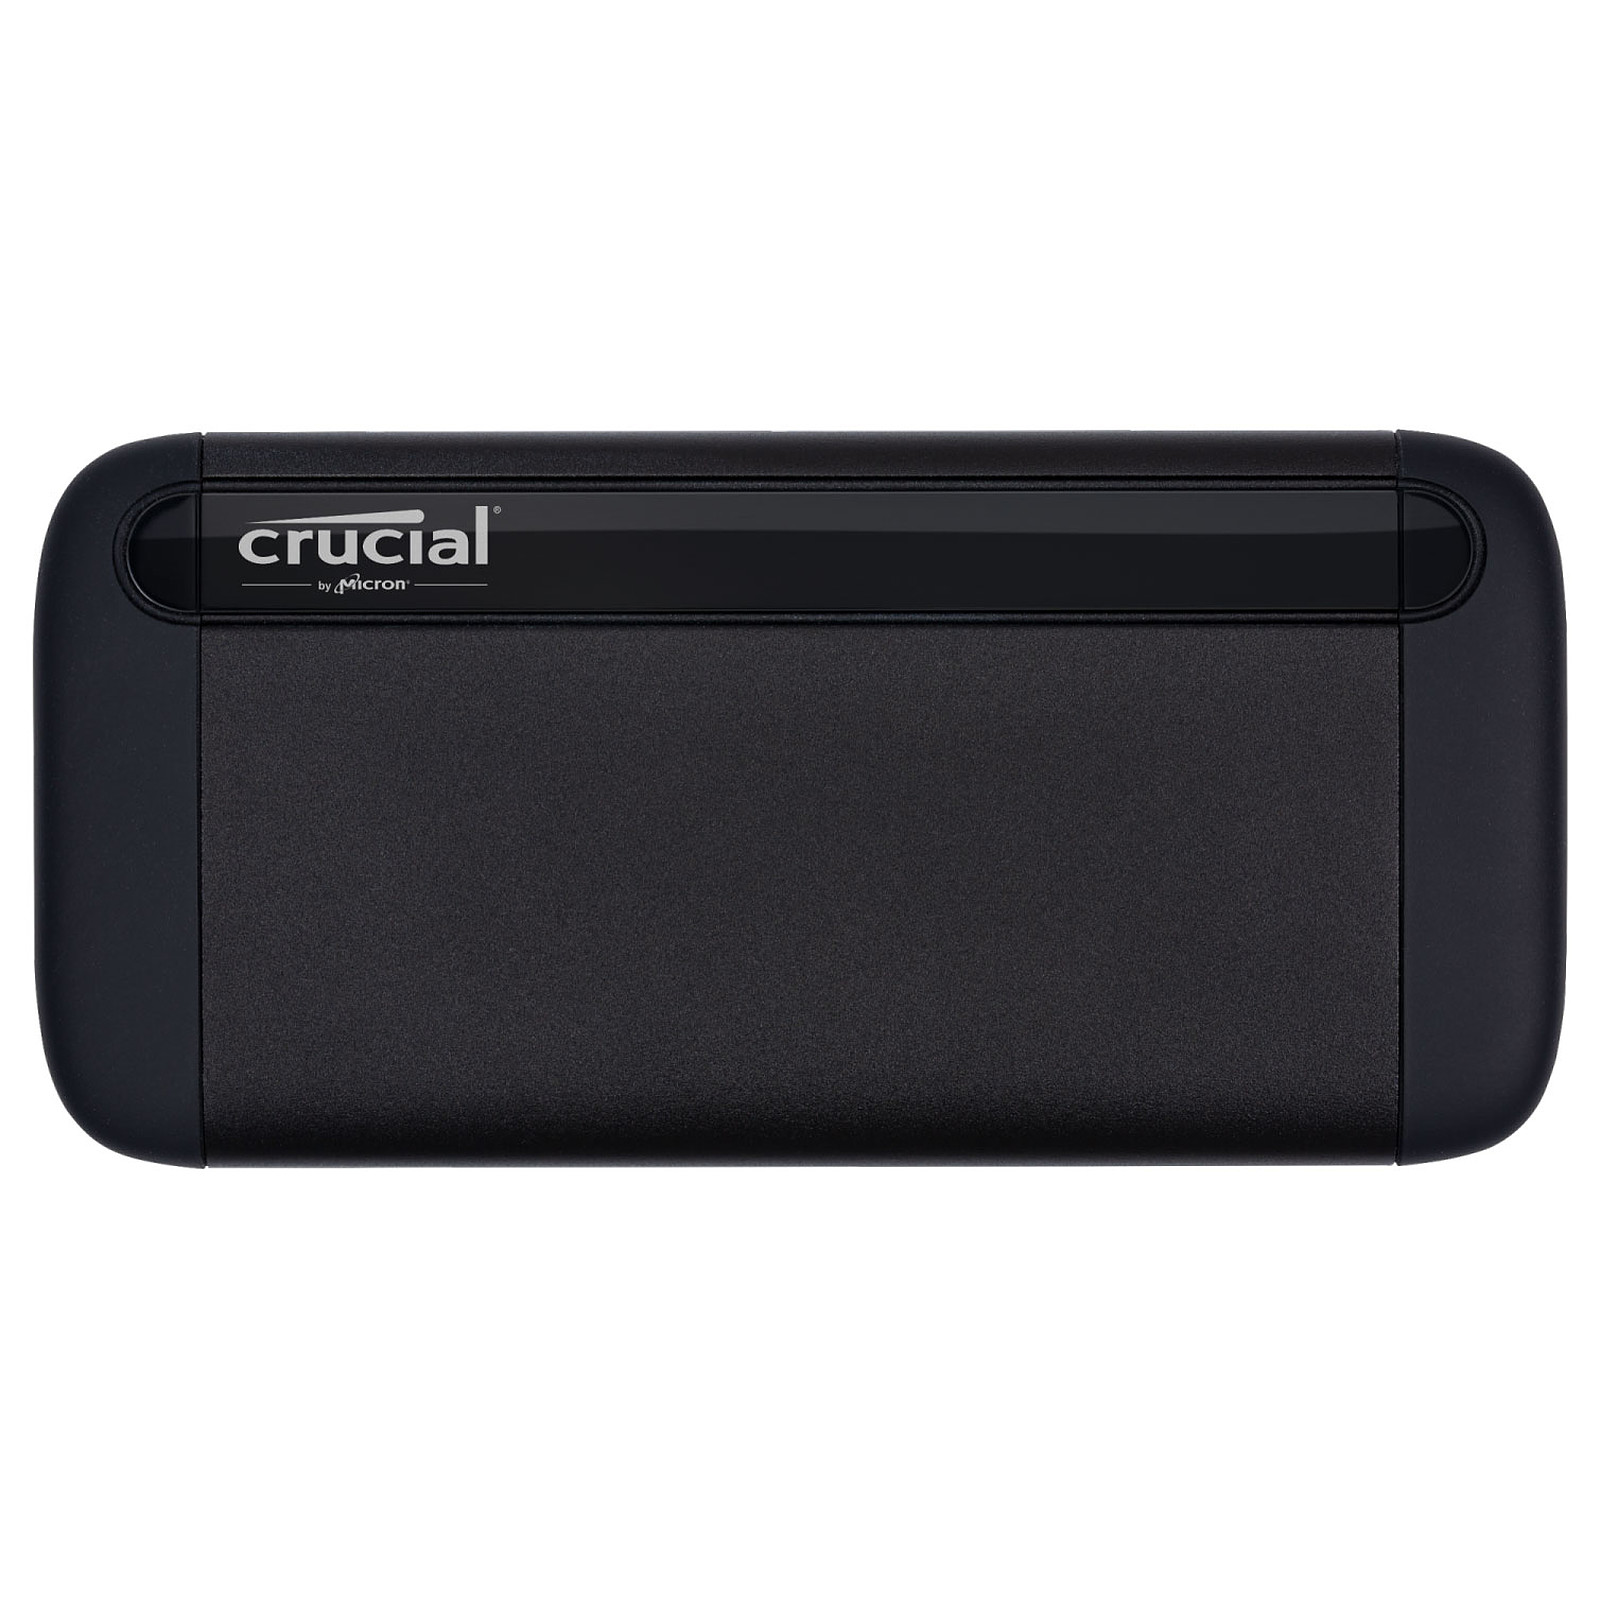 Crucial X8 Portable 1 To